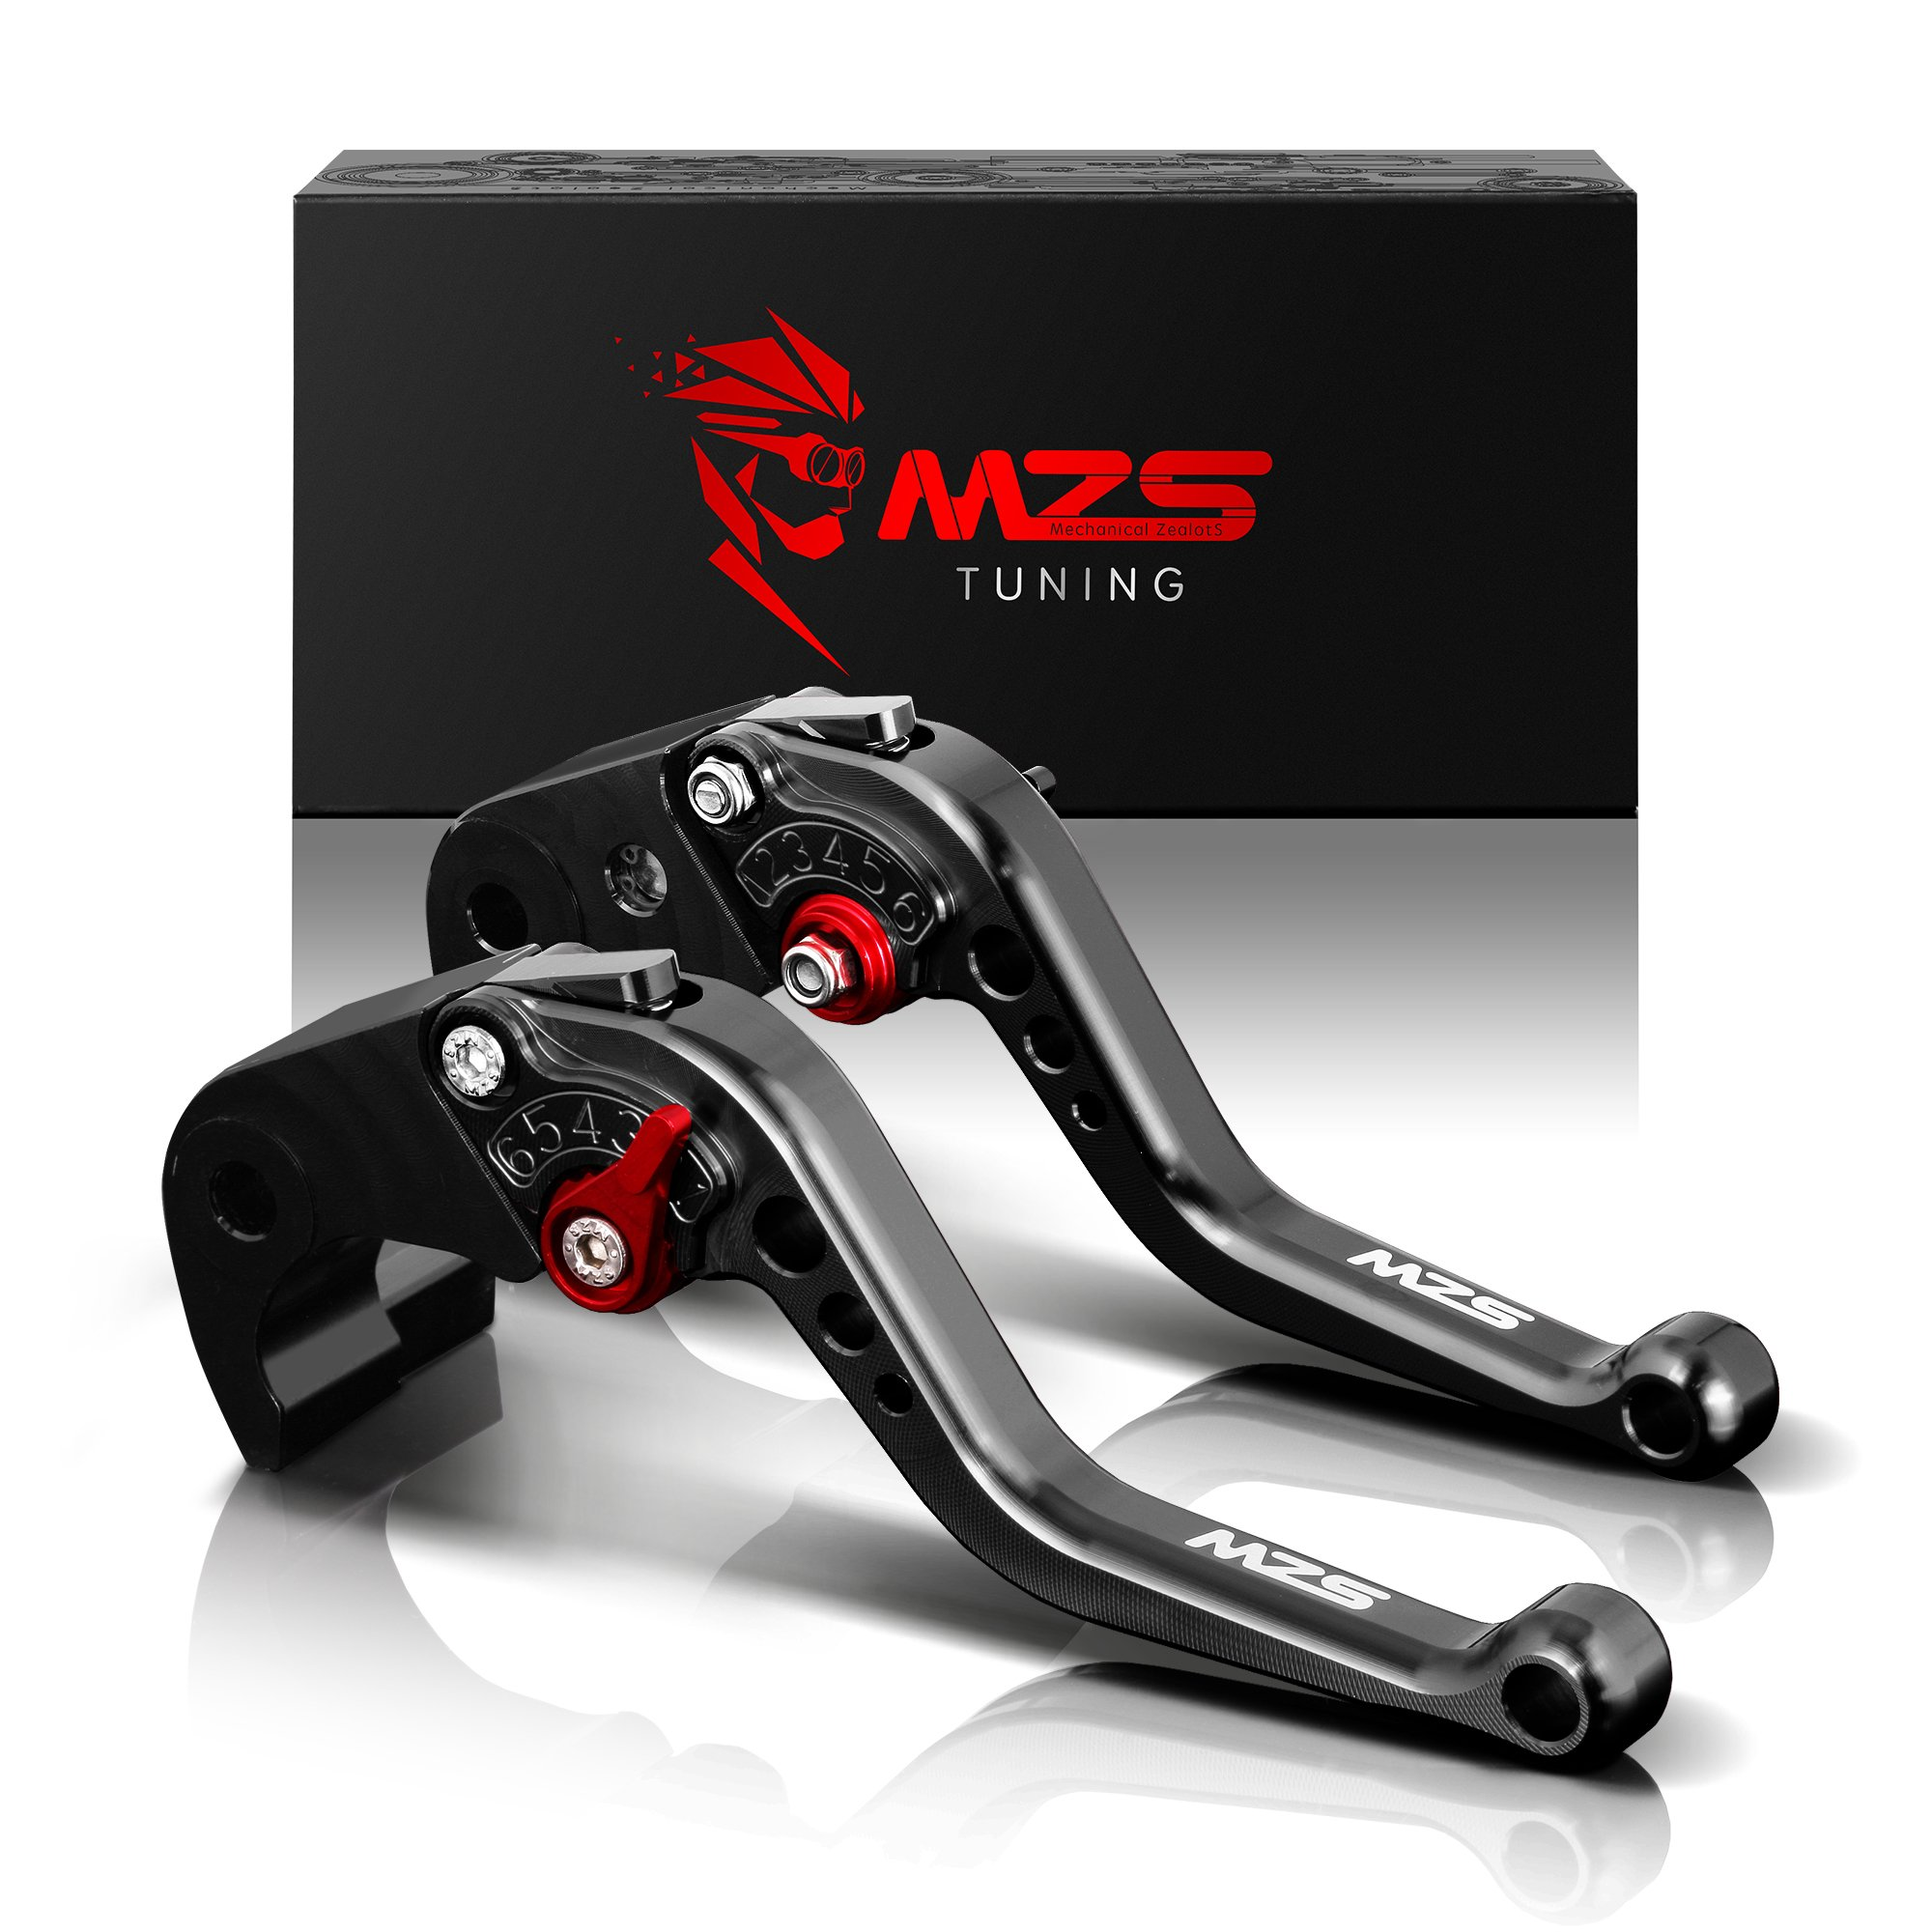 MZS Short Levers Brake Clutch CNC compatible Honda CBR 600 CBR600 CBR600F2 CBR600F3 CBR600F4 CBR600F4i F2 F3 F4 F4i PC25 1991-2007 Black by MZS